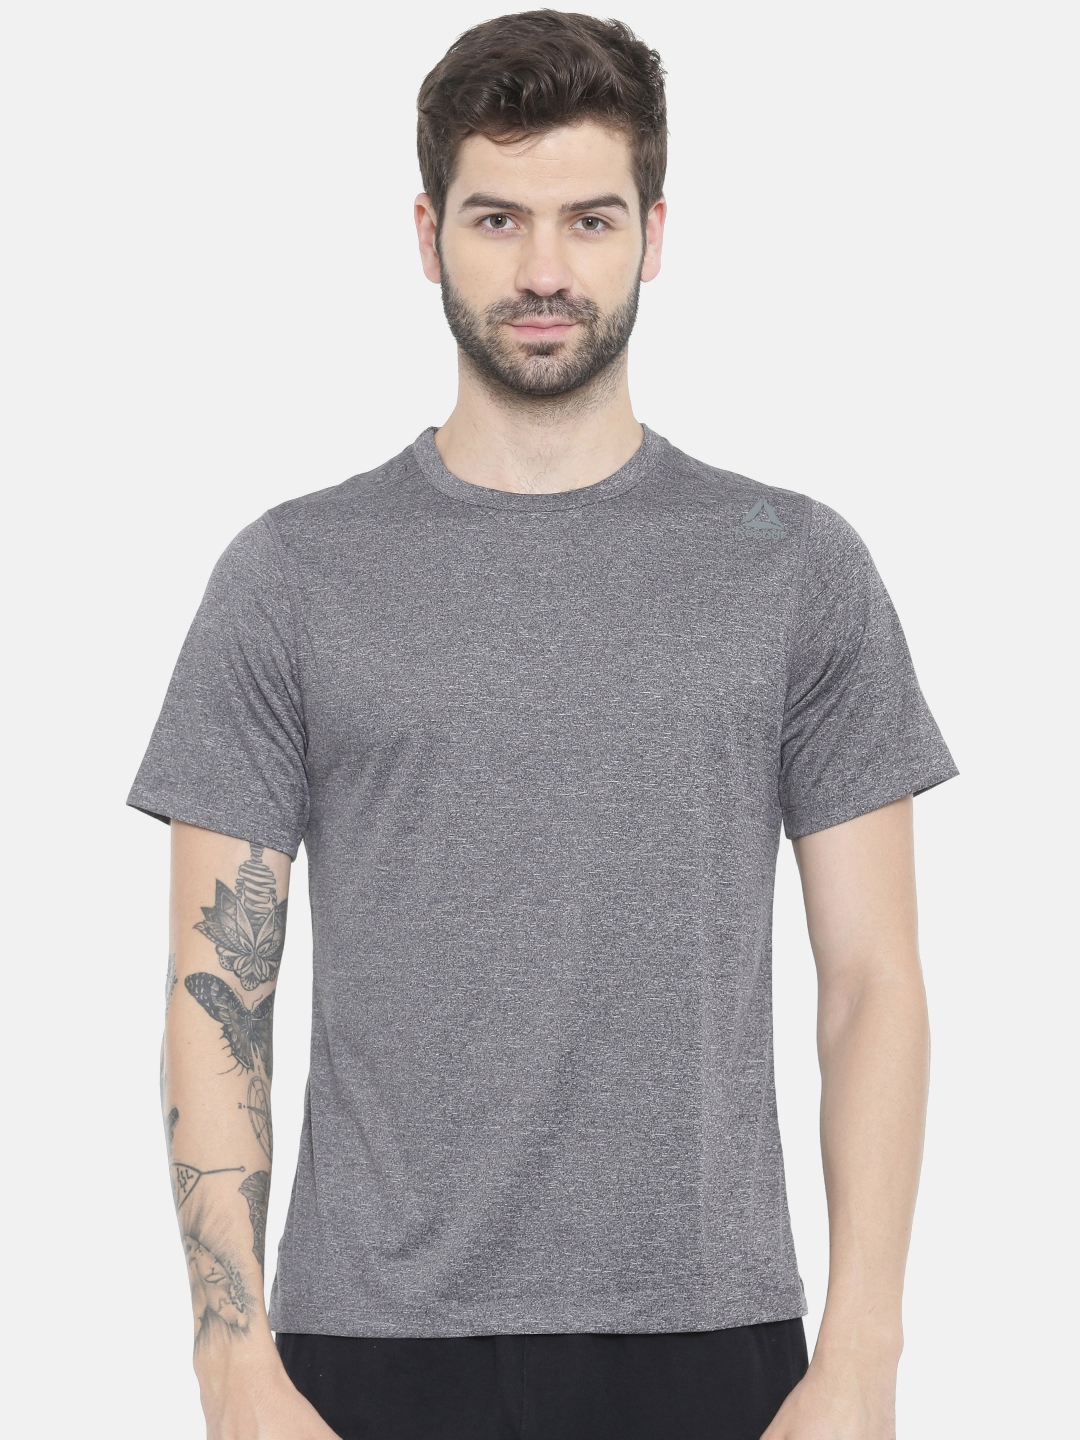 Reebok Grey Melange US Training T-shirt